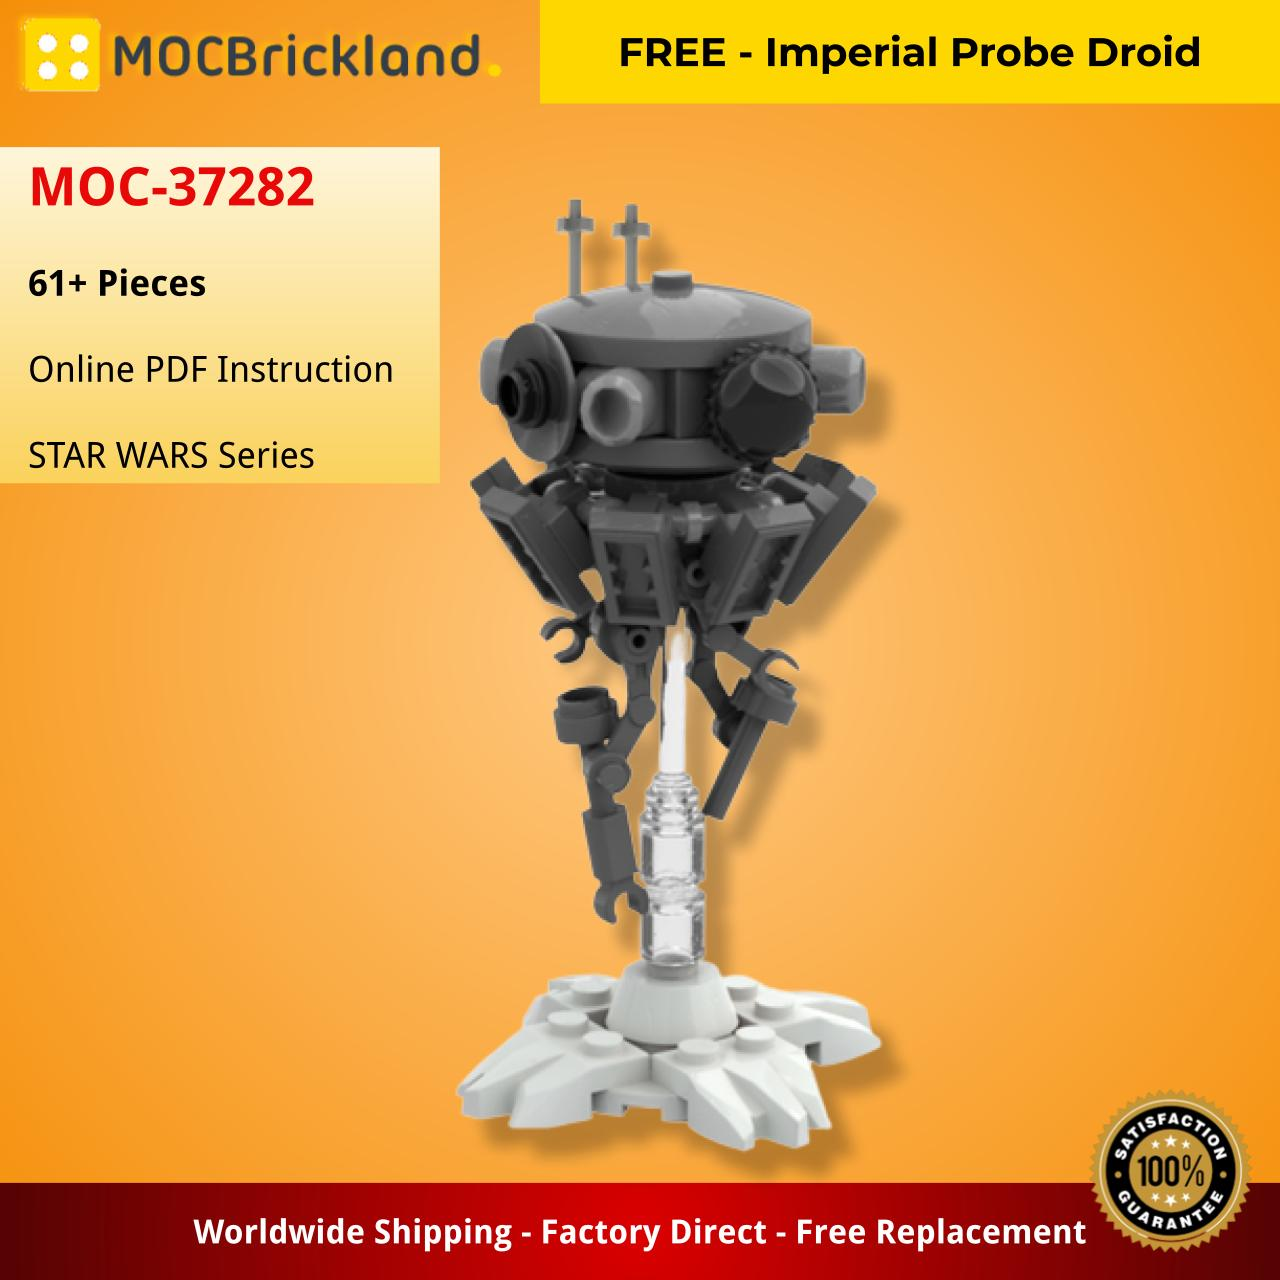 FREE – Imperial Probe Droid STAR WARS MOC-37282 WITH 61 PIECES